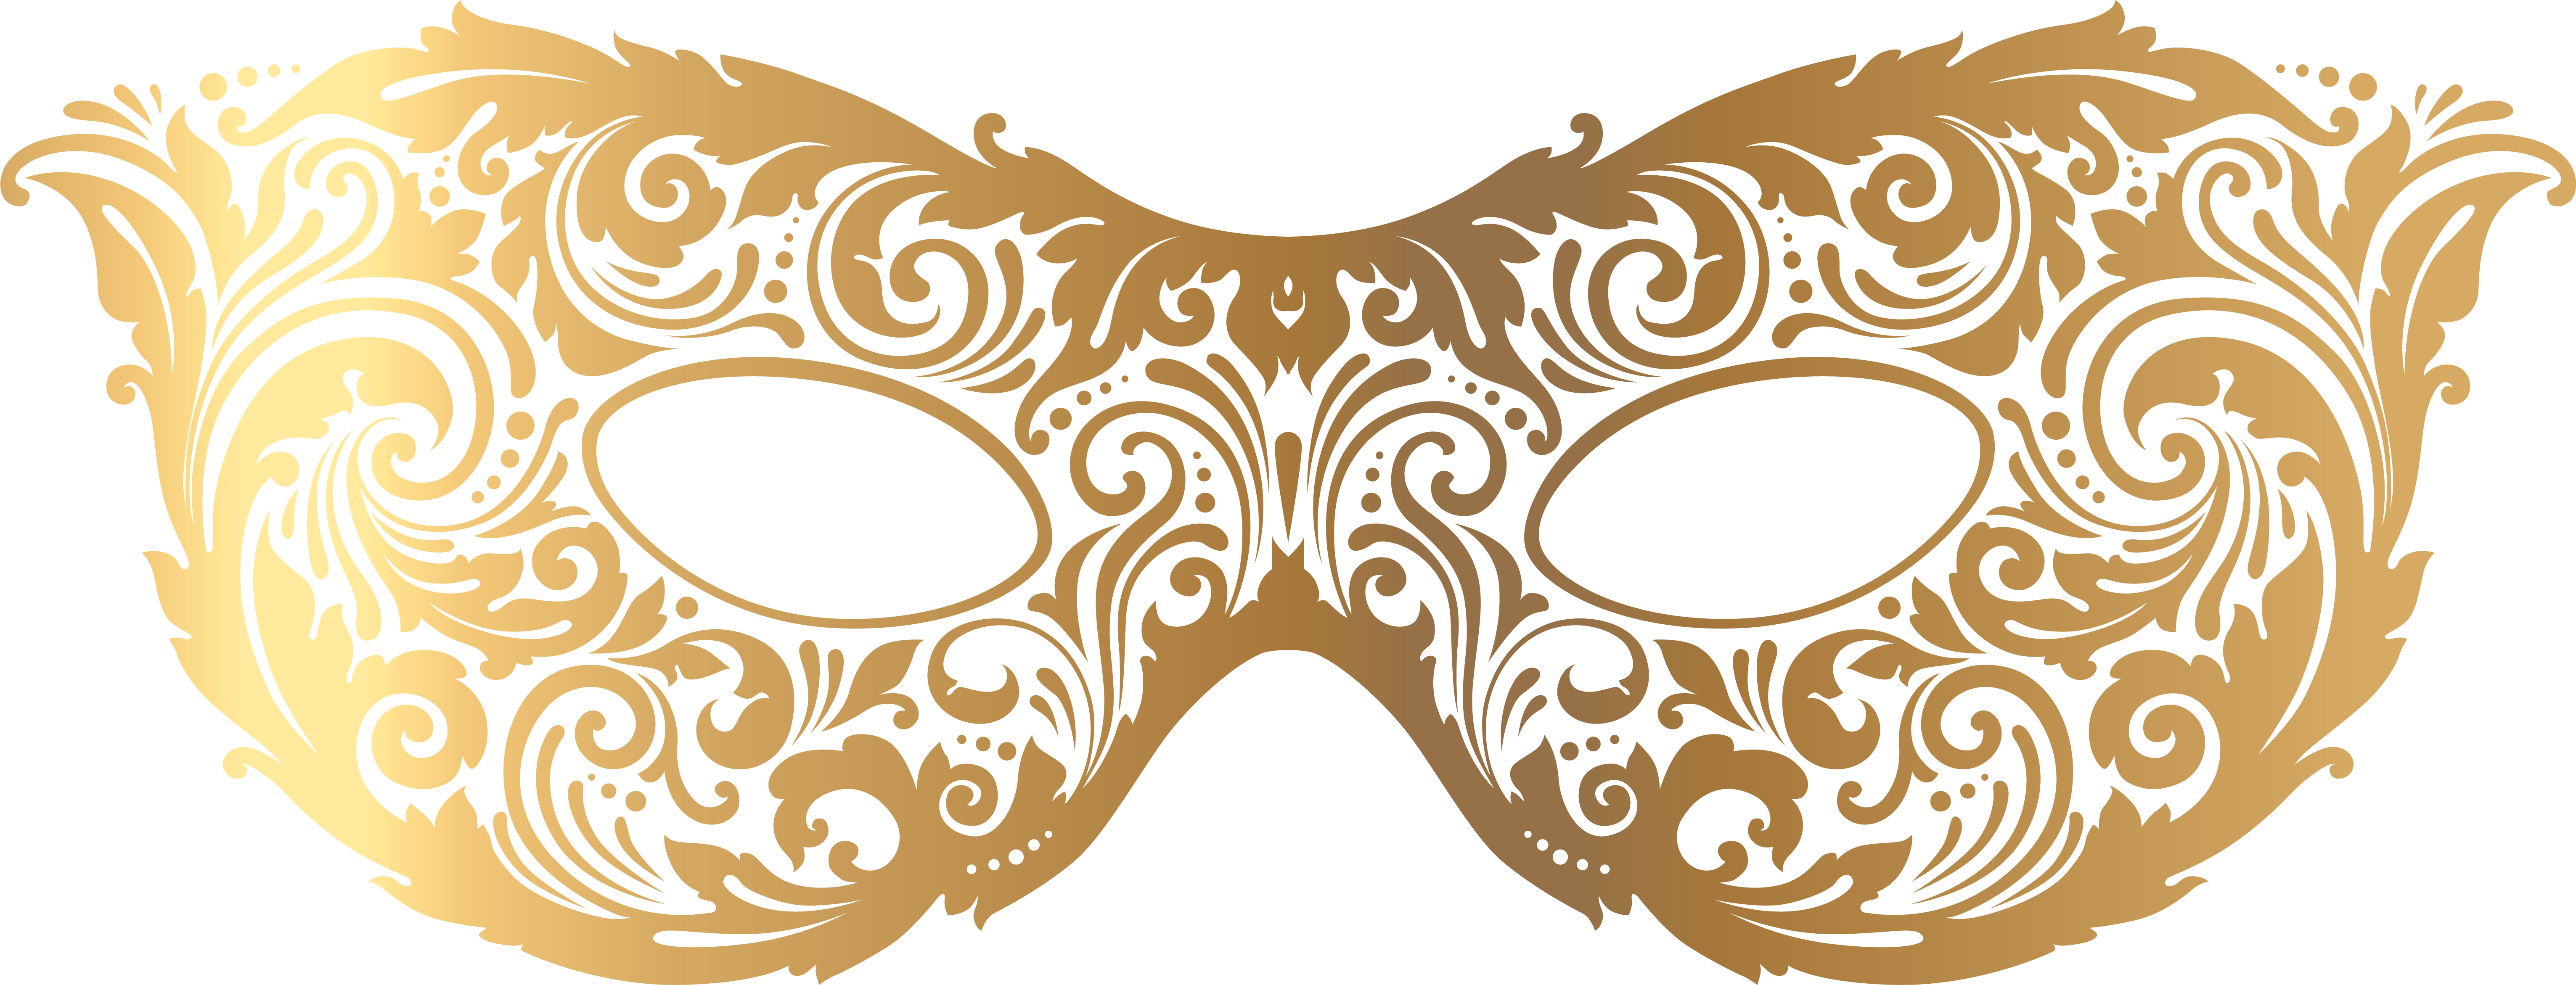 HD Gold Carnival Mask Image Png Image Clipart.